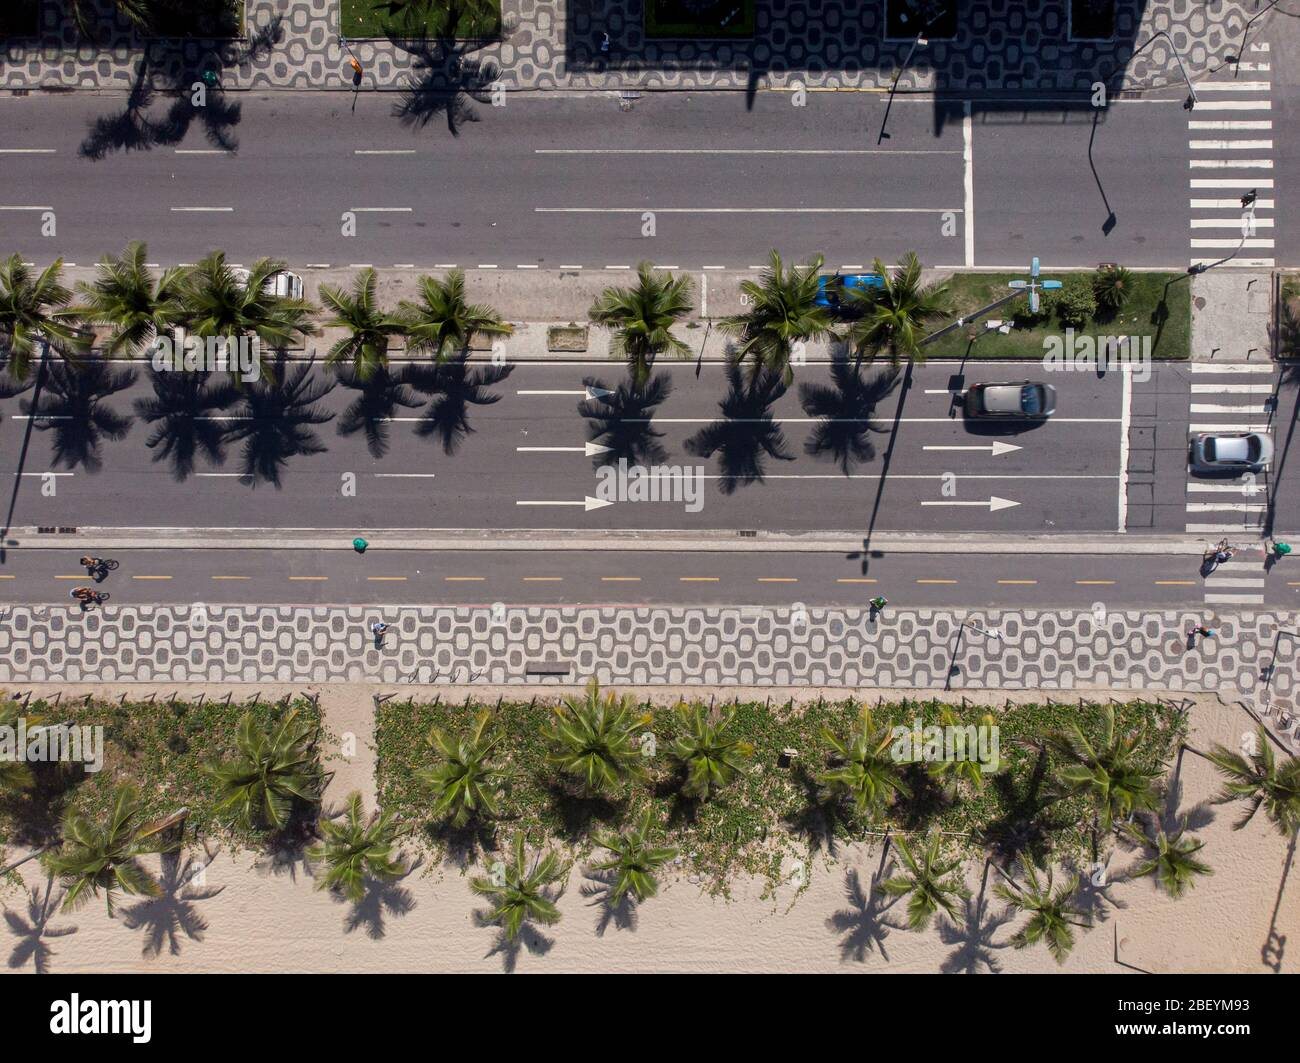 Top down aerial view of Ipanema boulevard with cars passing on the avenue flanked by palm trees and pedestrian crossing with people biking and walking Stock Photo